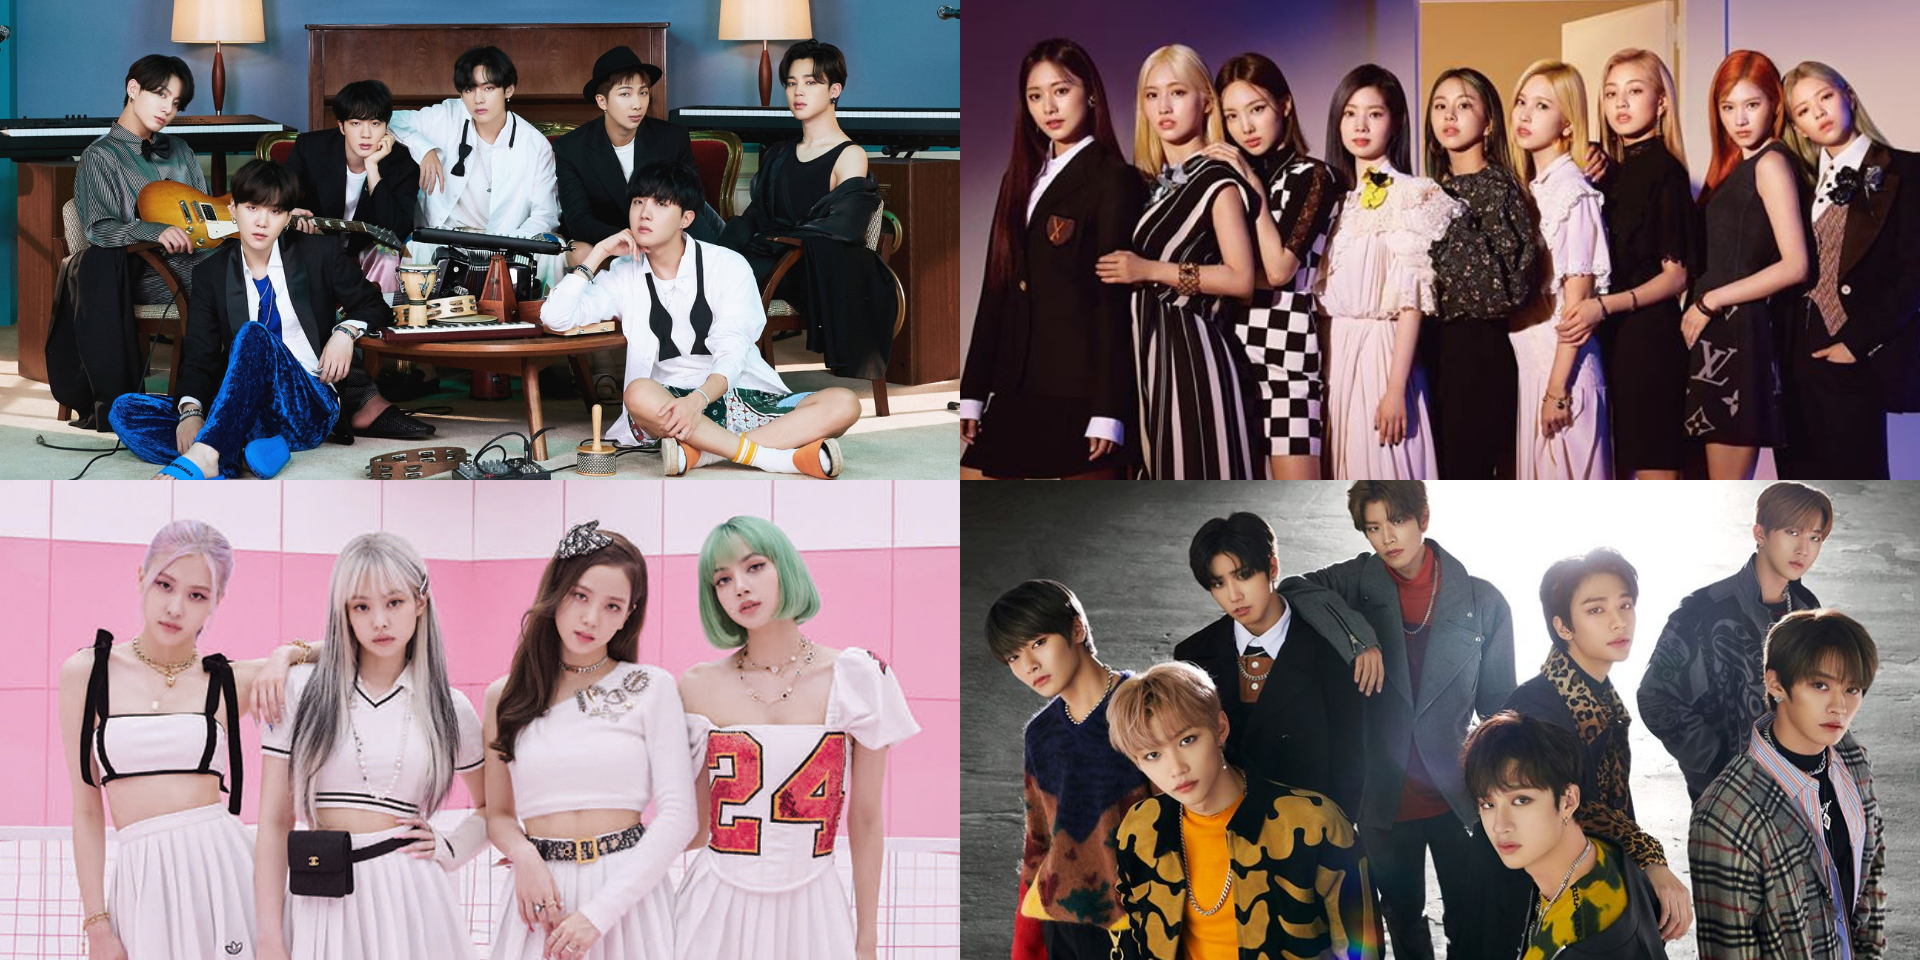 Spotify Wrapped unveils the Top K-pop artists of 2020 - BTS, BLACKPINK, TWICE, Stray Kids, and more